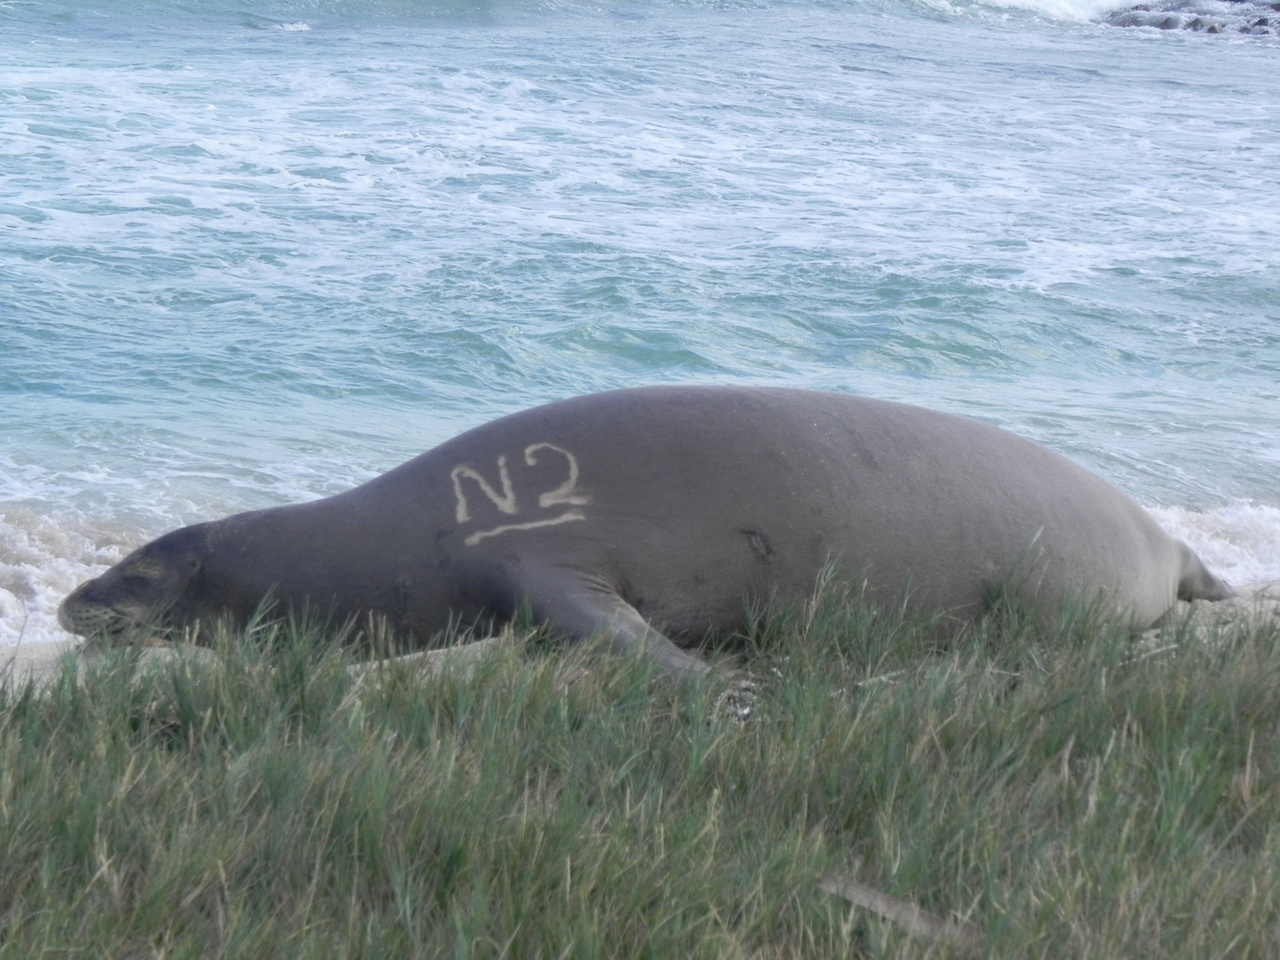 Monk seal on beach with vegetation in foreground and ocean behind. Bleach mark of N2 visible.